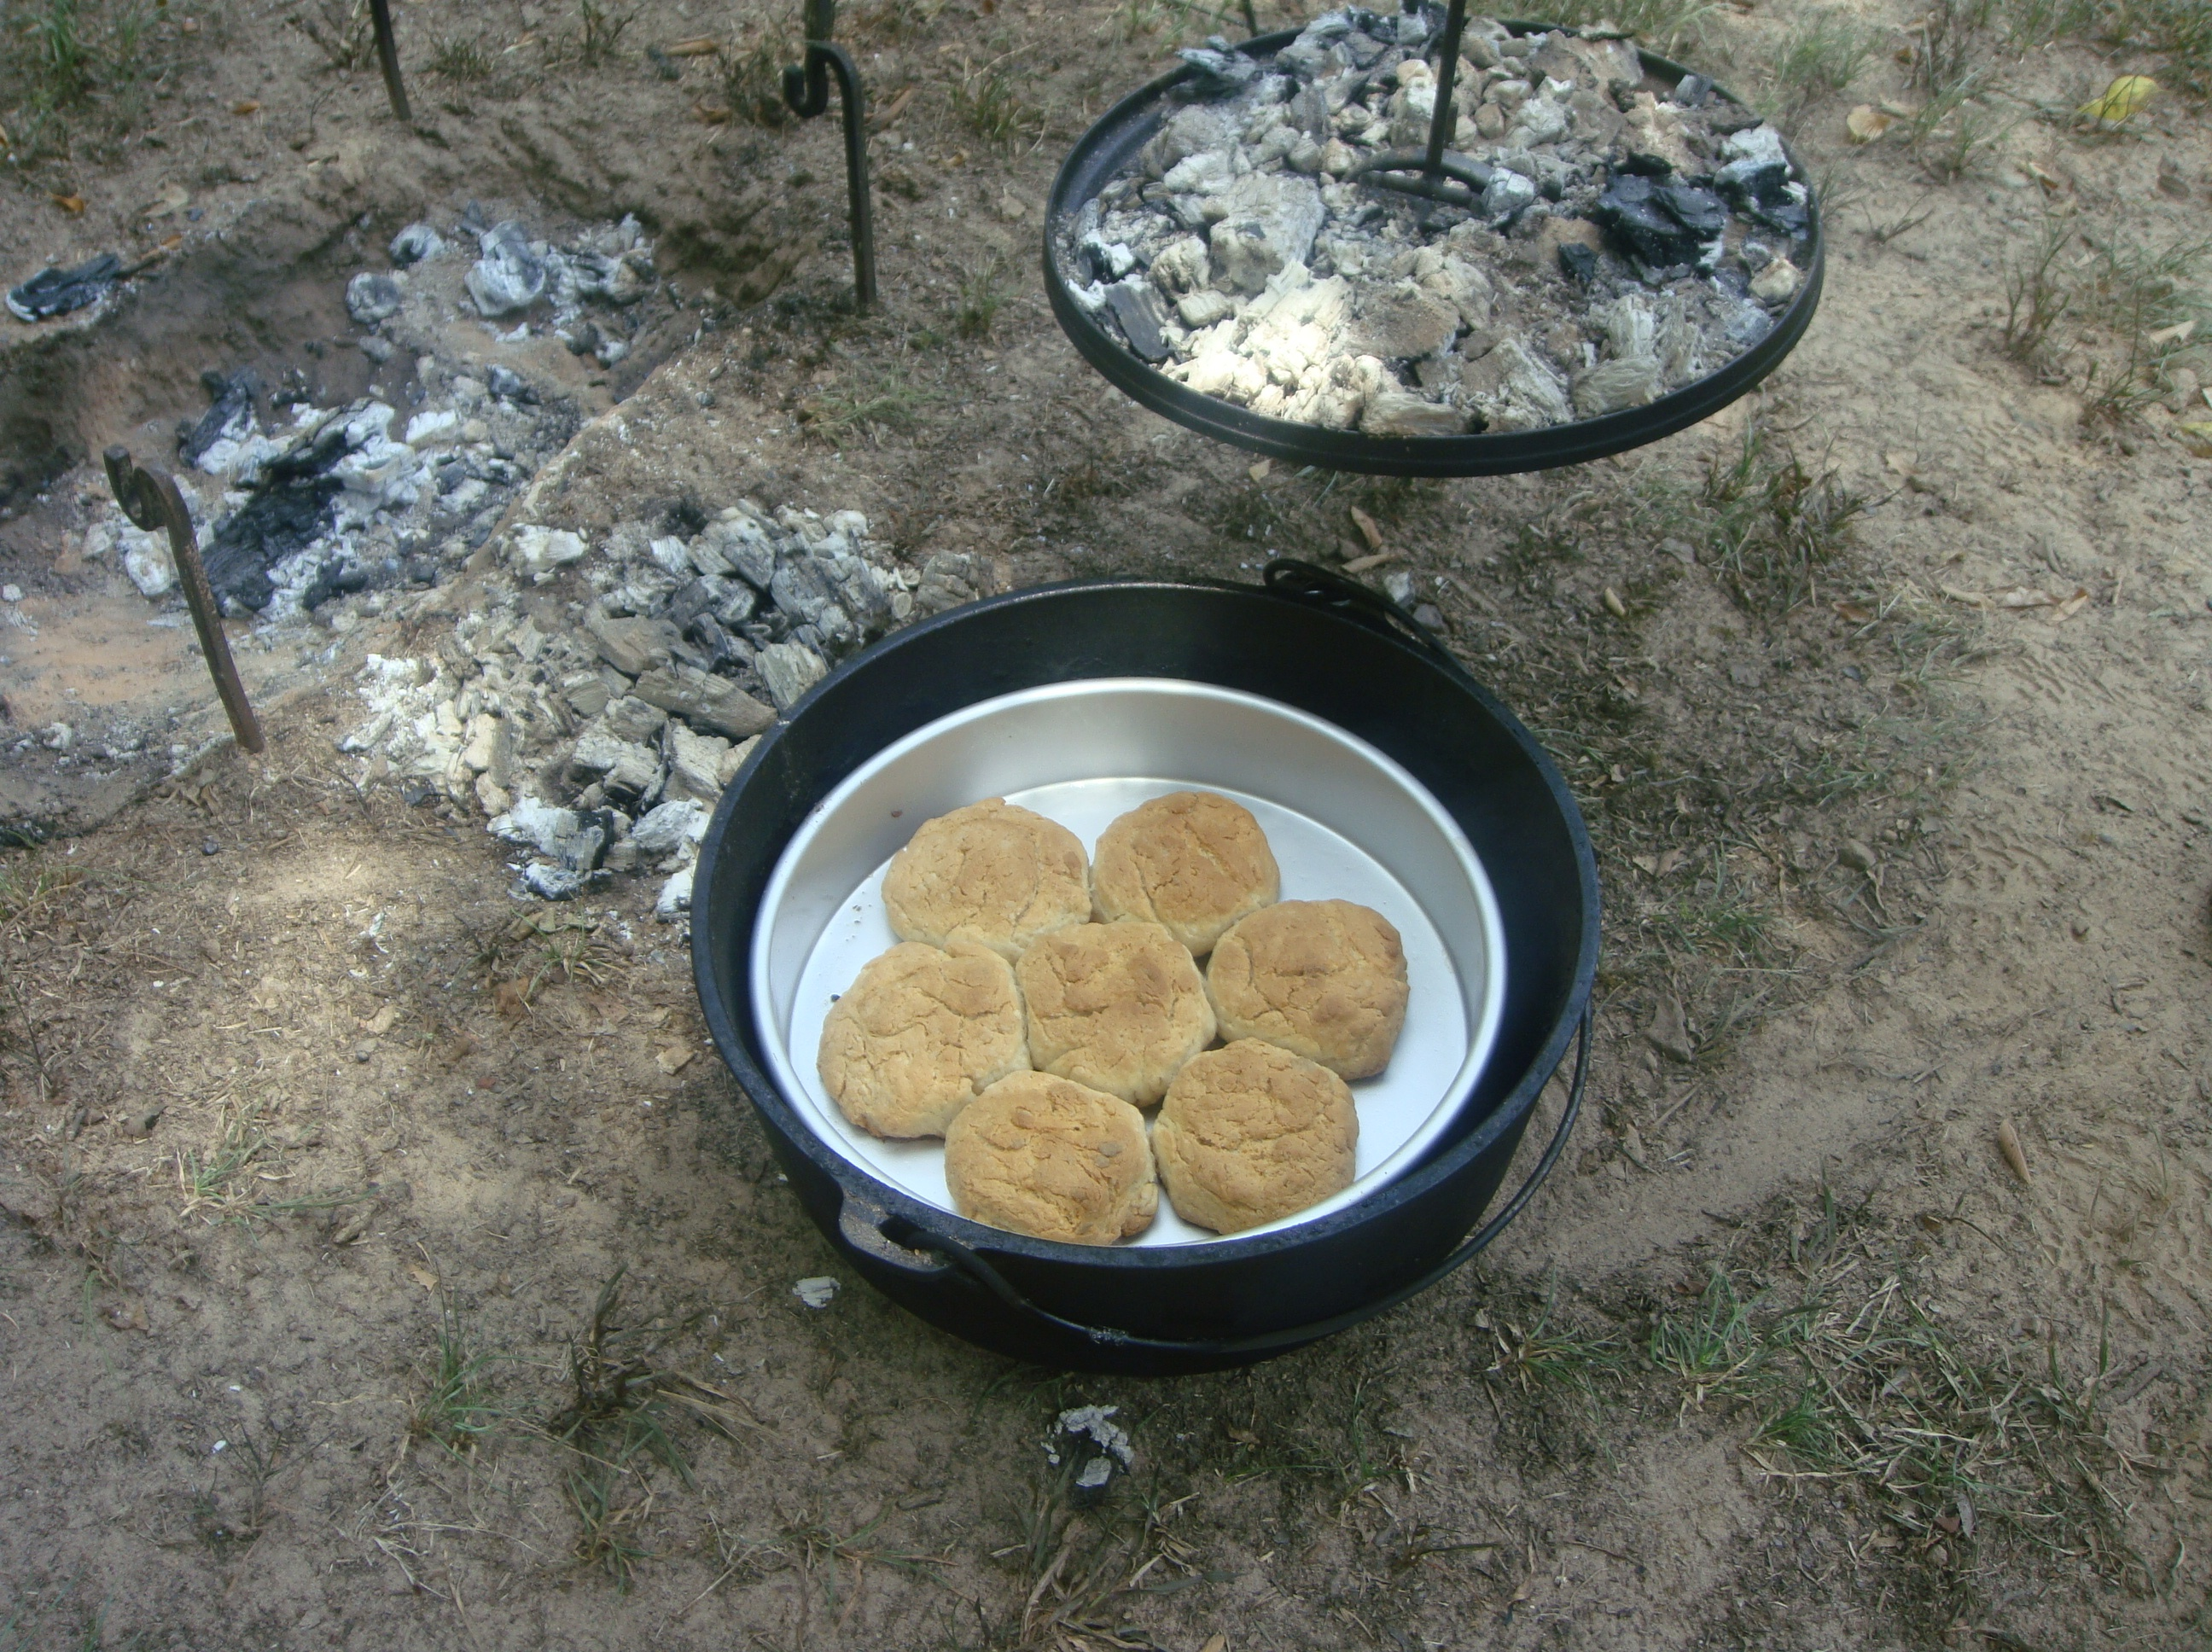 Make Dutch Oven Biscuits Sensible Survival